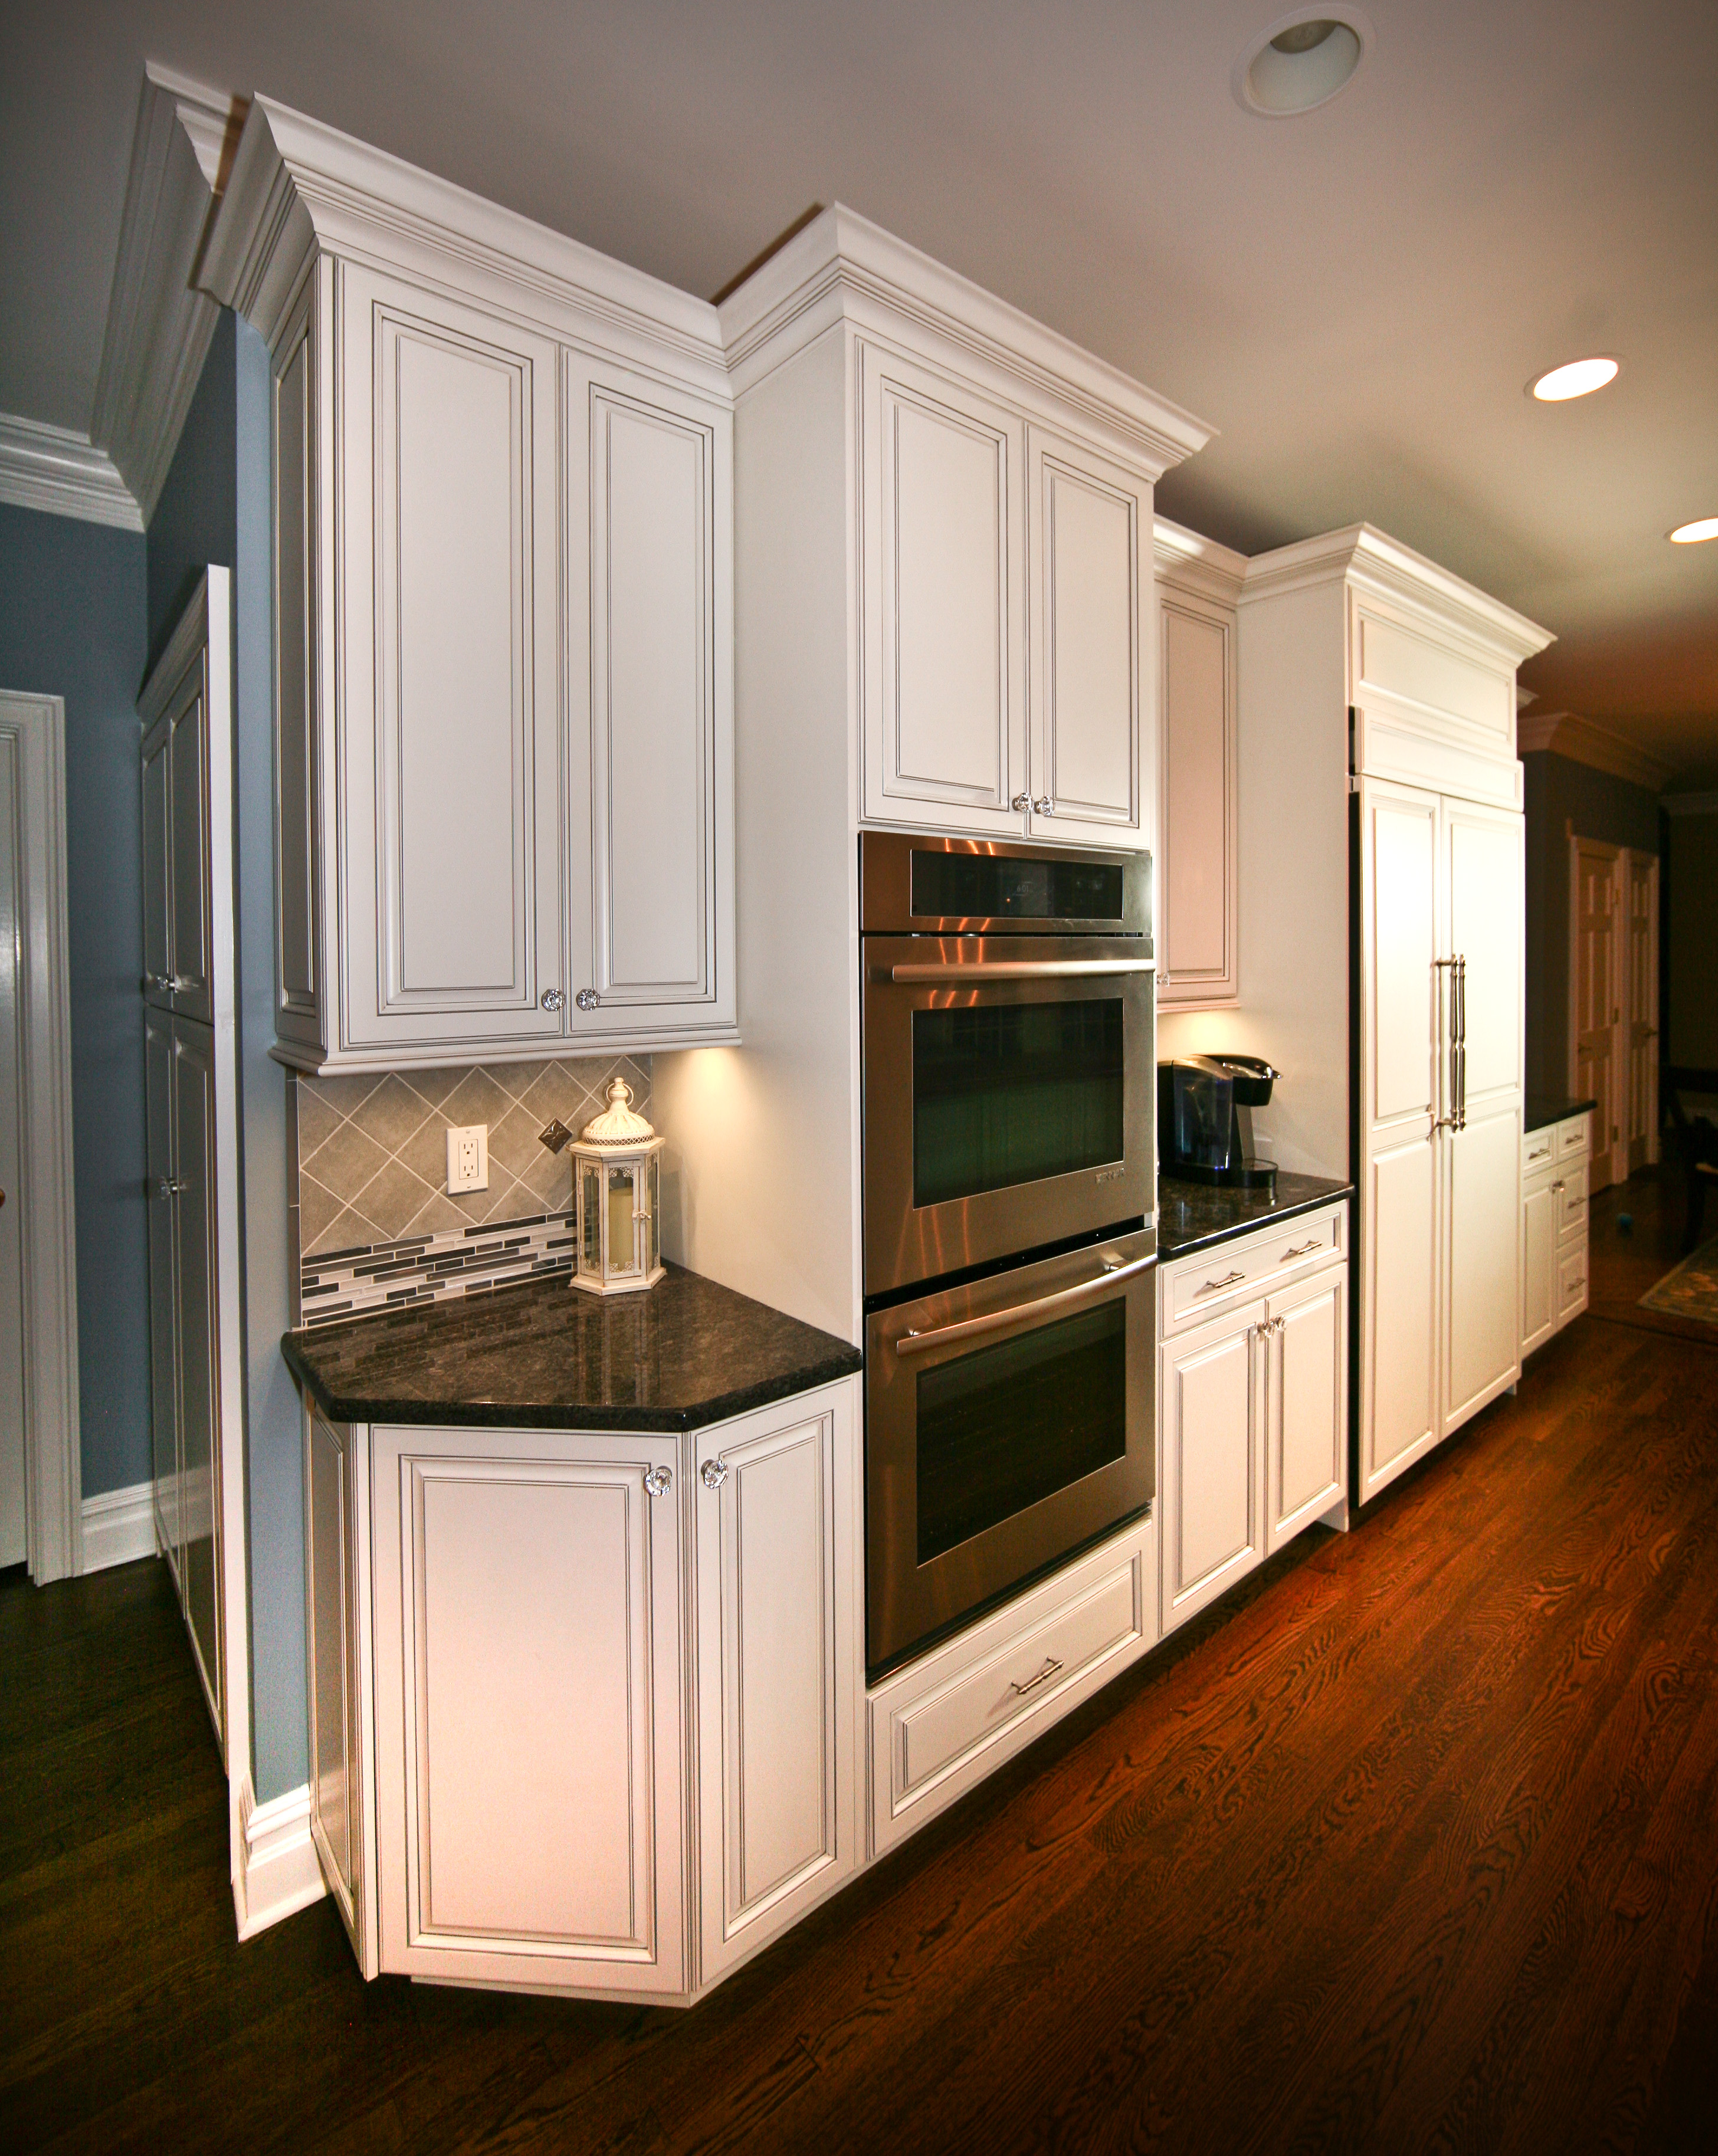 Classic Custom Cabinets kitchen base cabinets Angled Base Cabinet